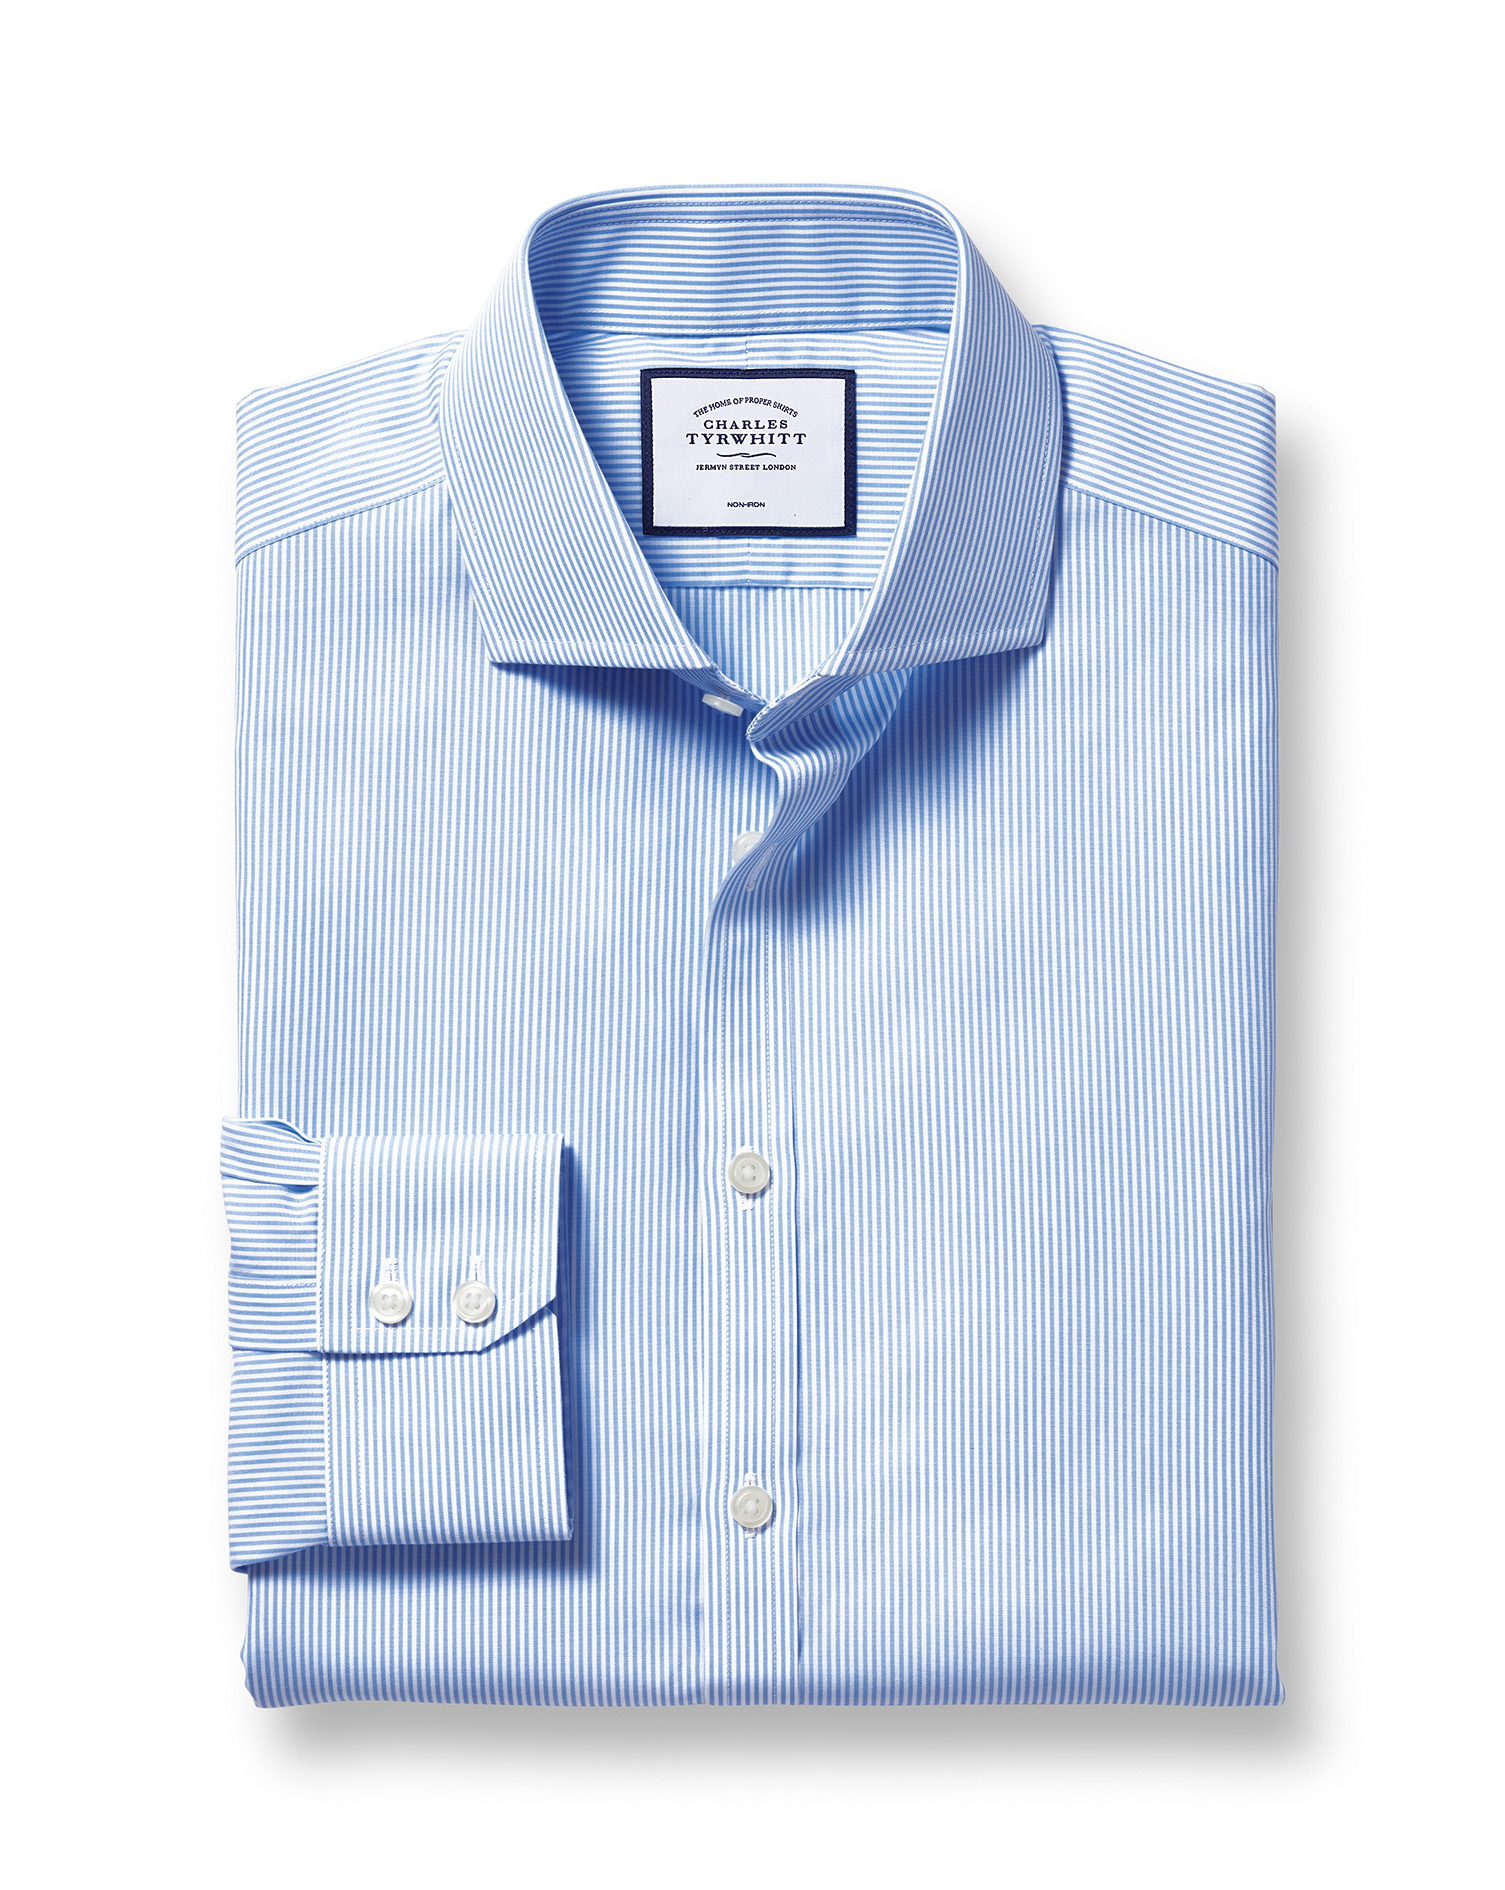 Extra Slim Fit Cutaway Non-Iron Bengal Stripe Sky Blue Cotton Formal Shirt Double Cuff Size 15.5/36